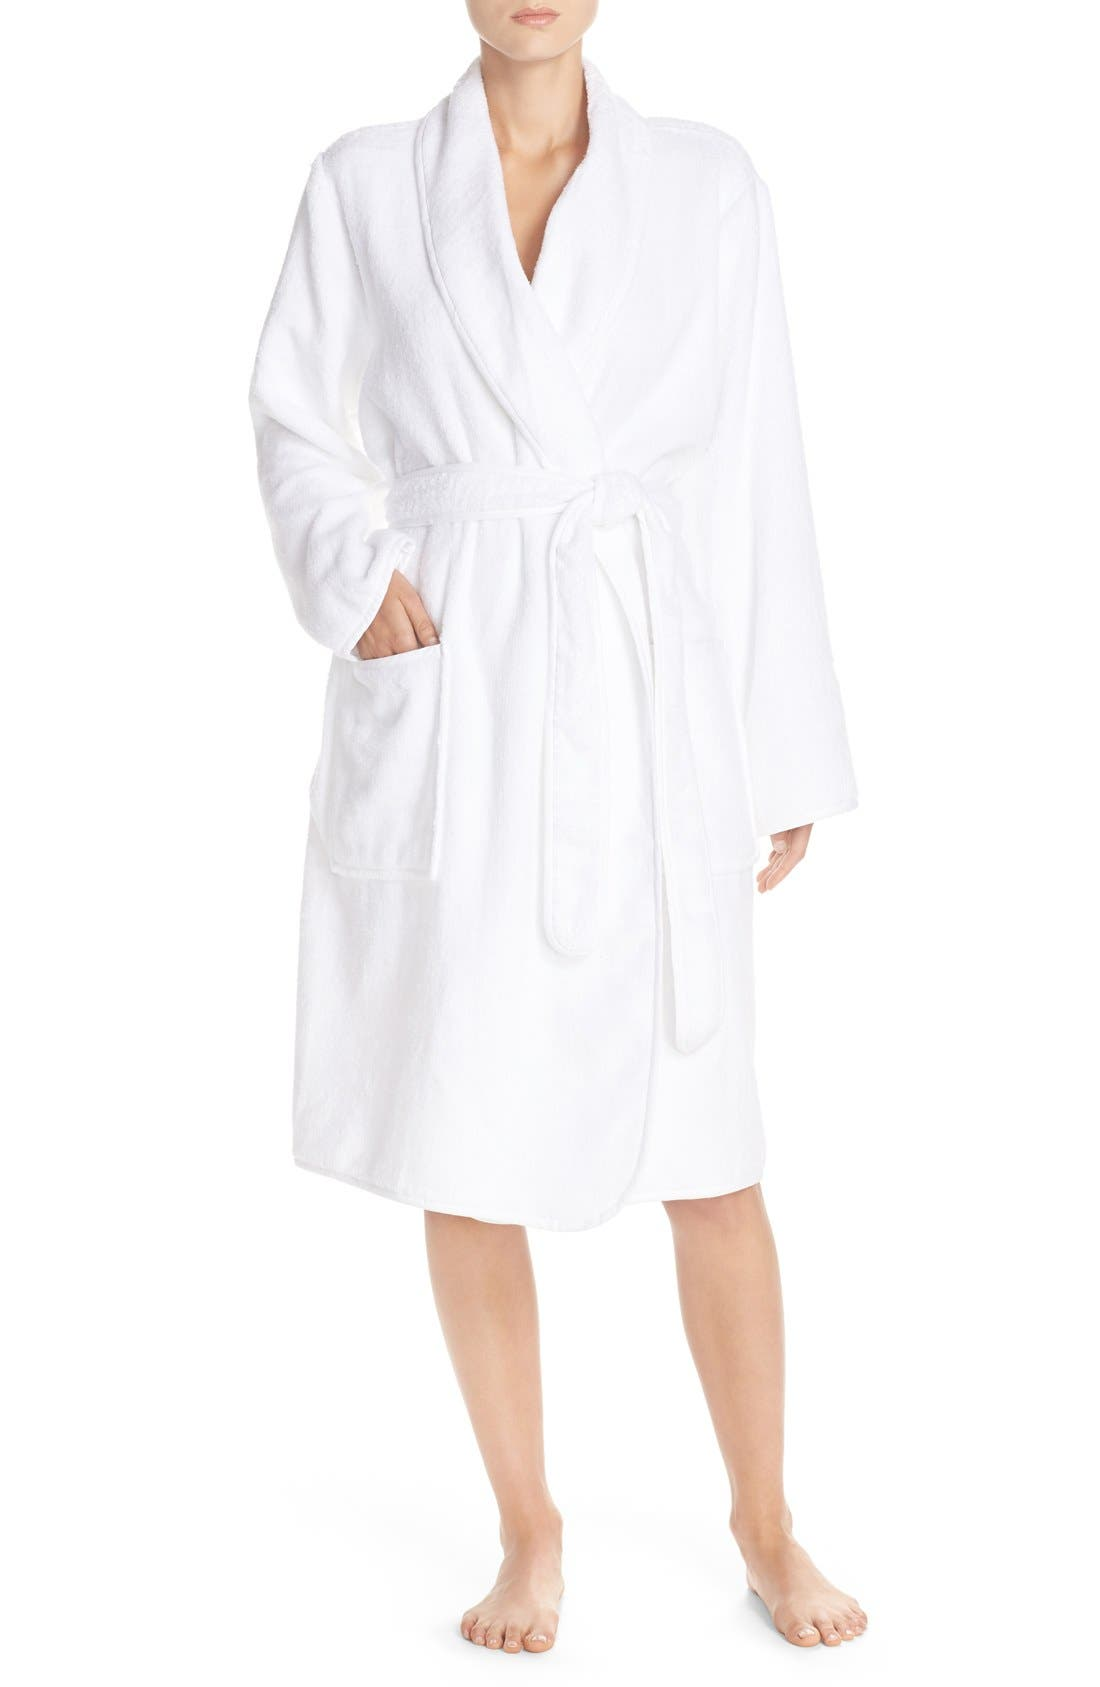 naked terry cotton robe - Terry Cloth Robe